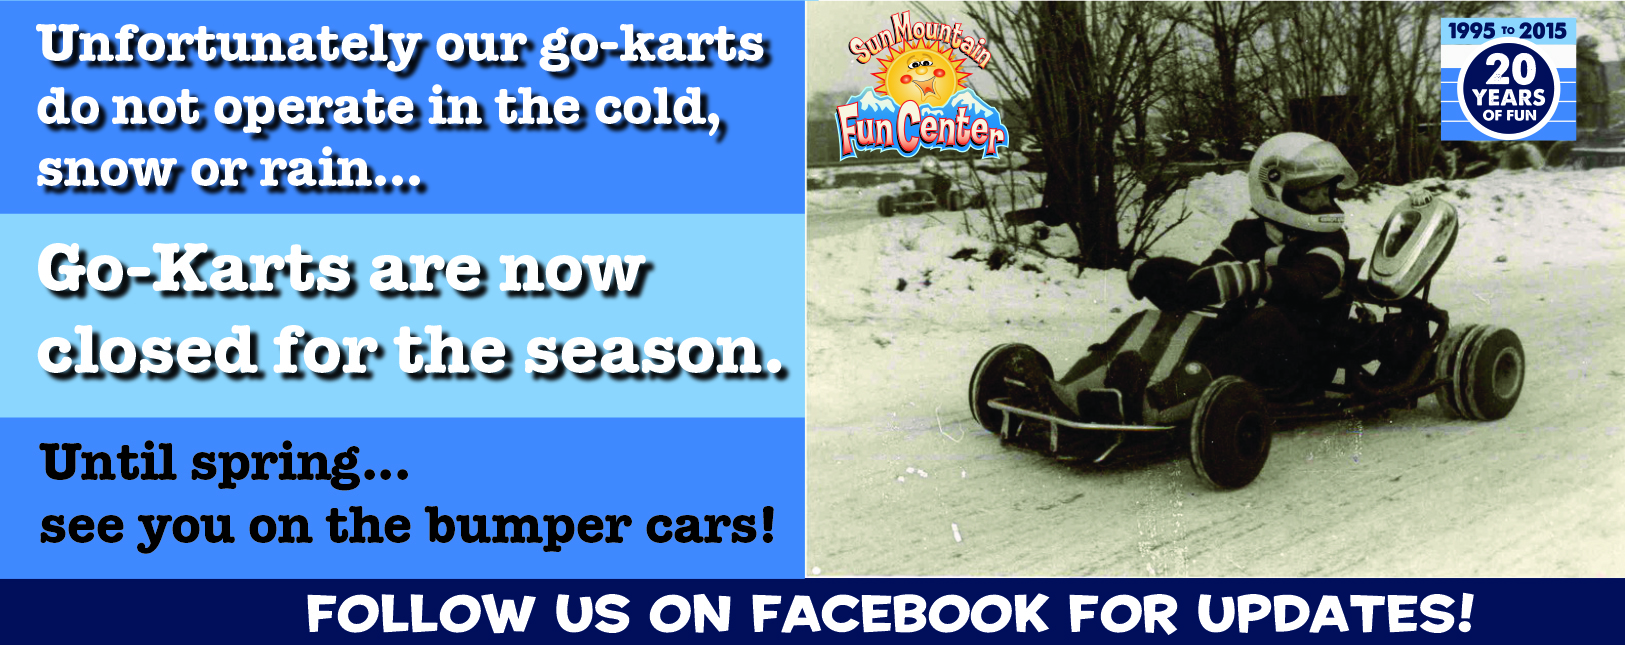 Go Karts Closed for Winter